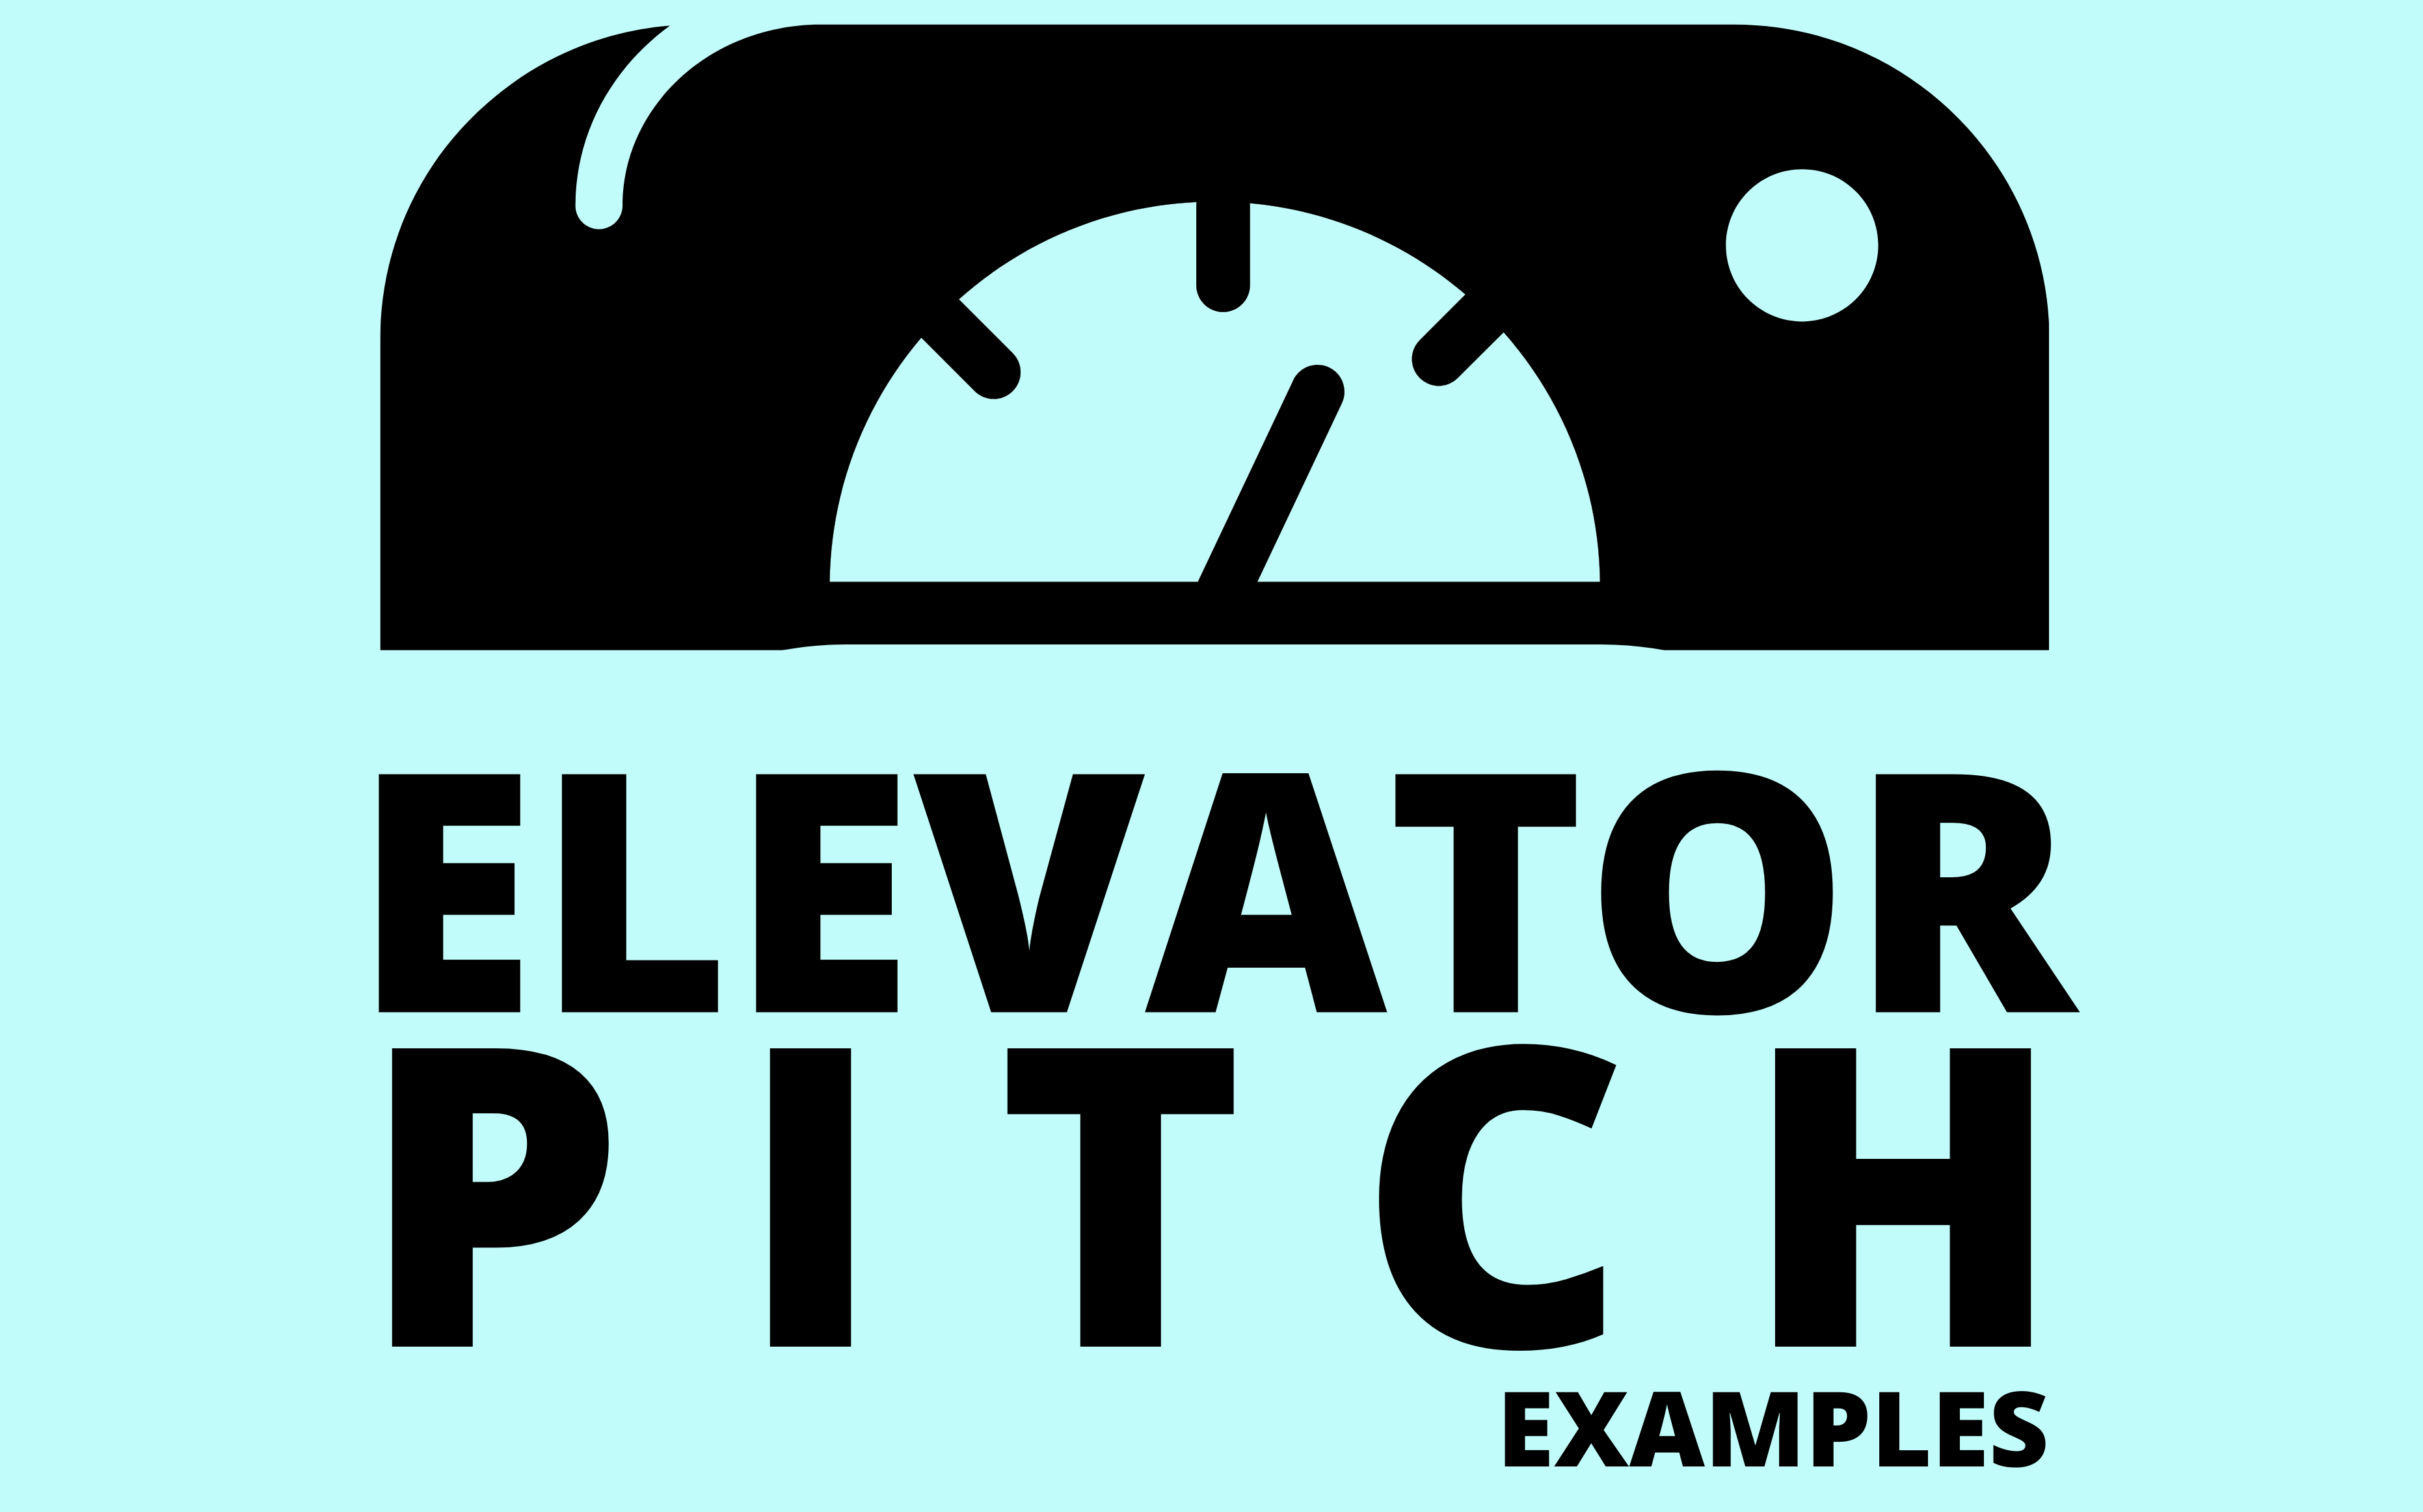 Elevator pitch examples, Examples of Elevator pitch, The Elevator pitch examples, Elevator pitch examples business, Examples of Elevator pitch for students